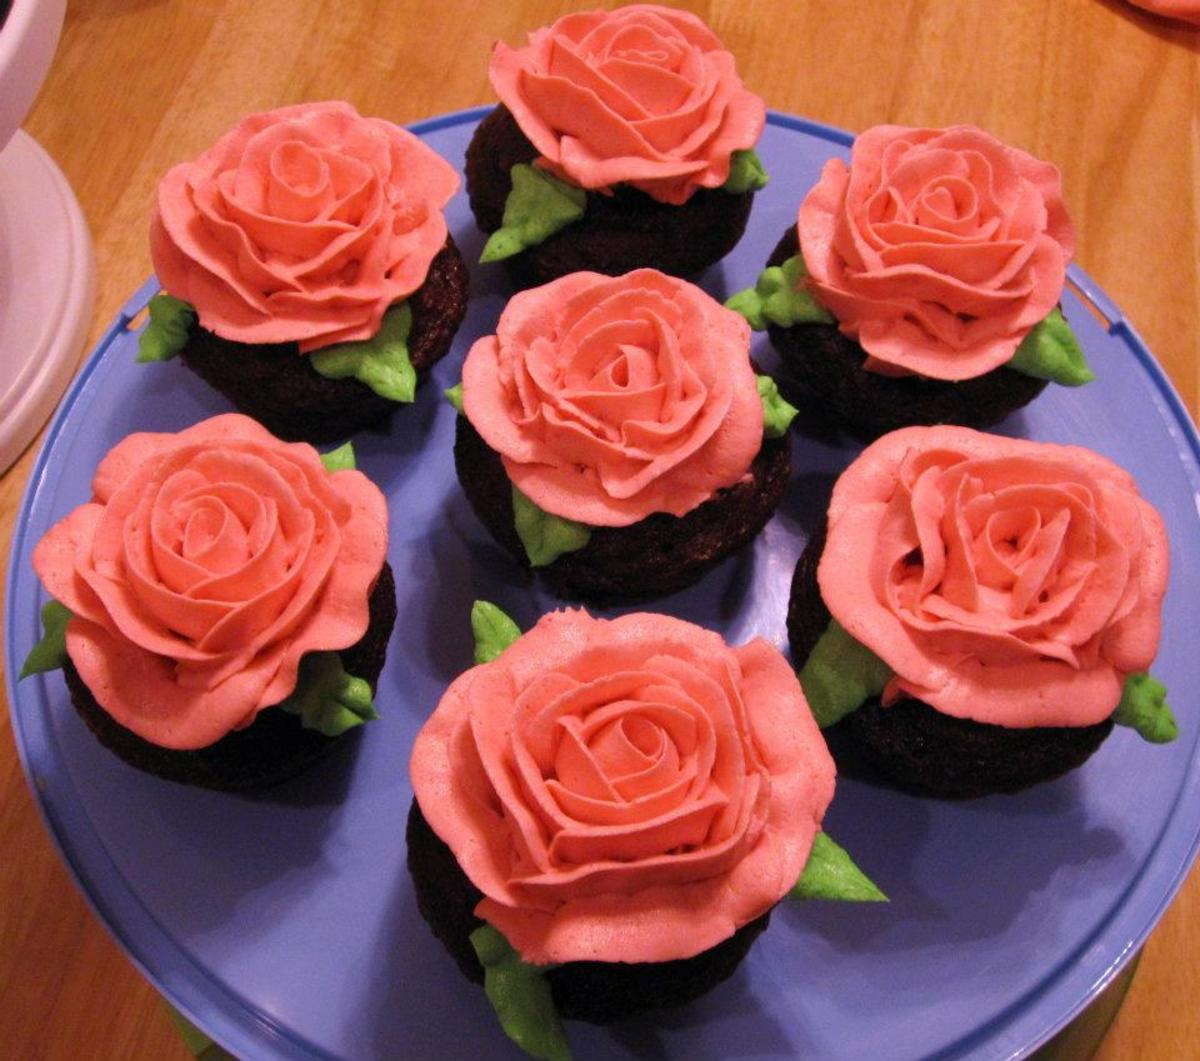 Cake Decorating Icing For Flowers : How to Make Buttercream Frosting/Icing, Perfect for ...